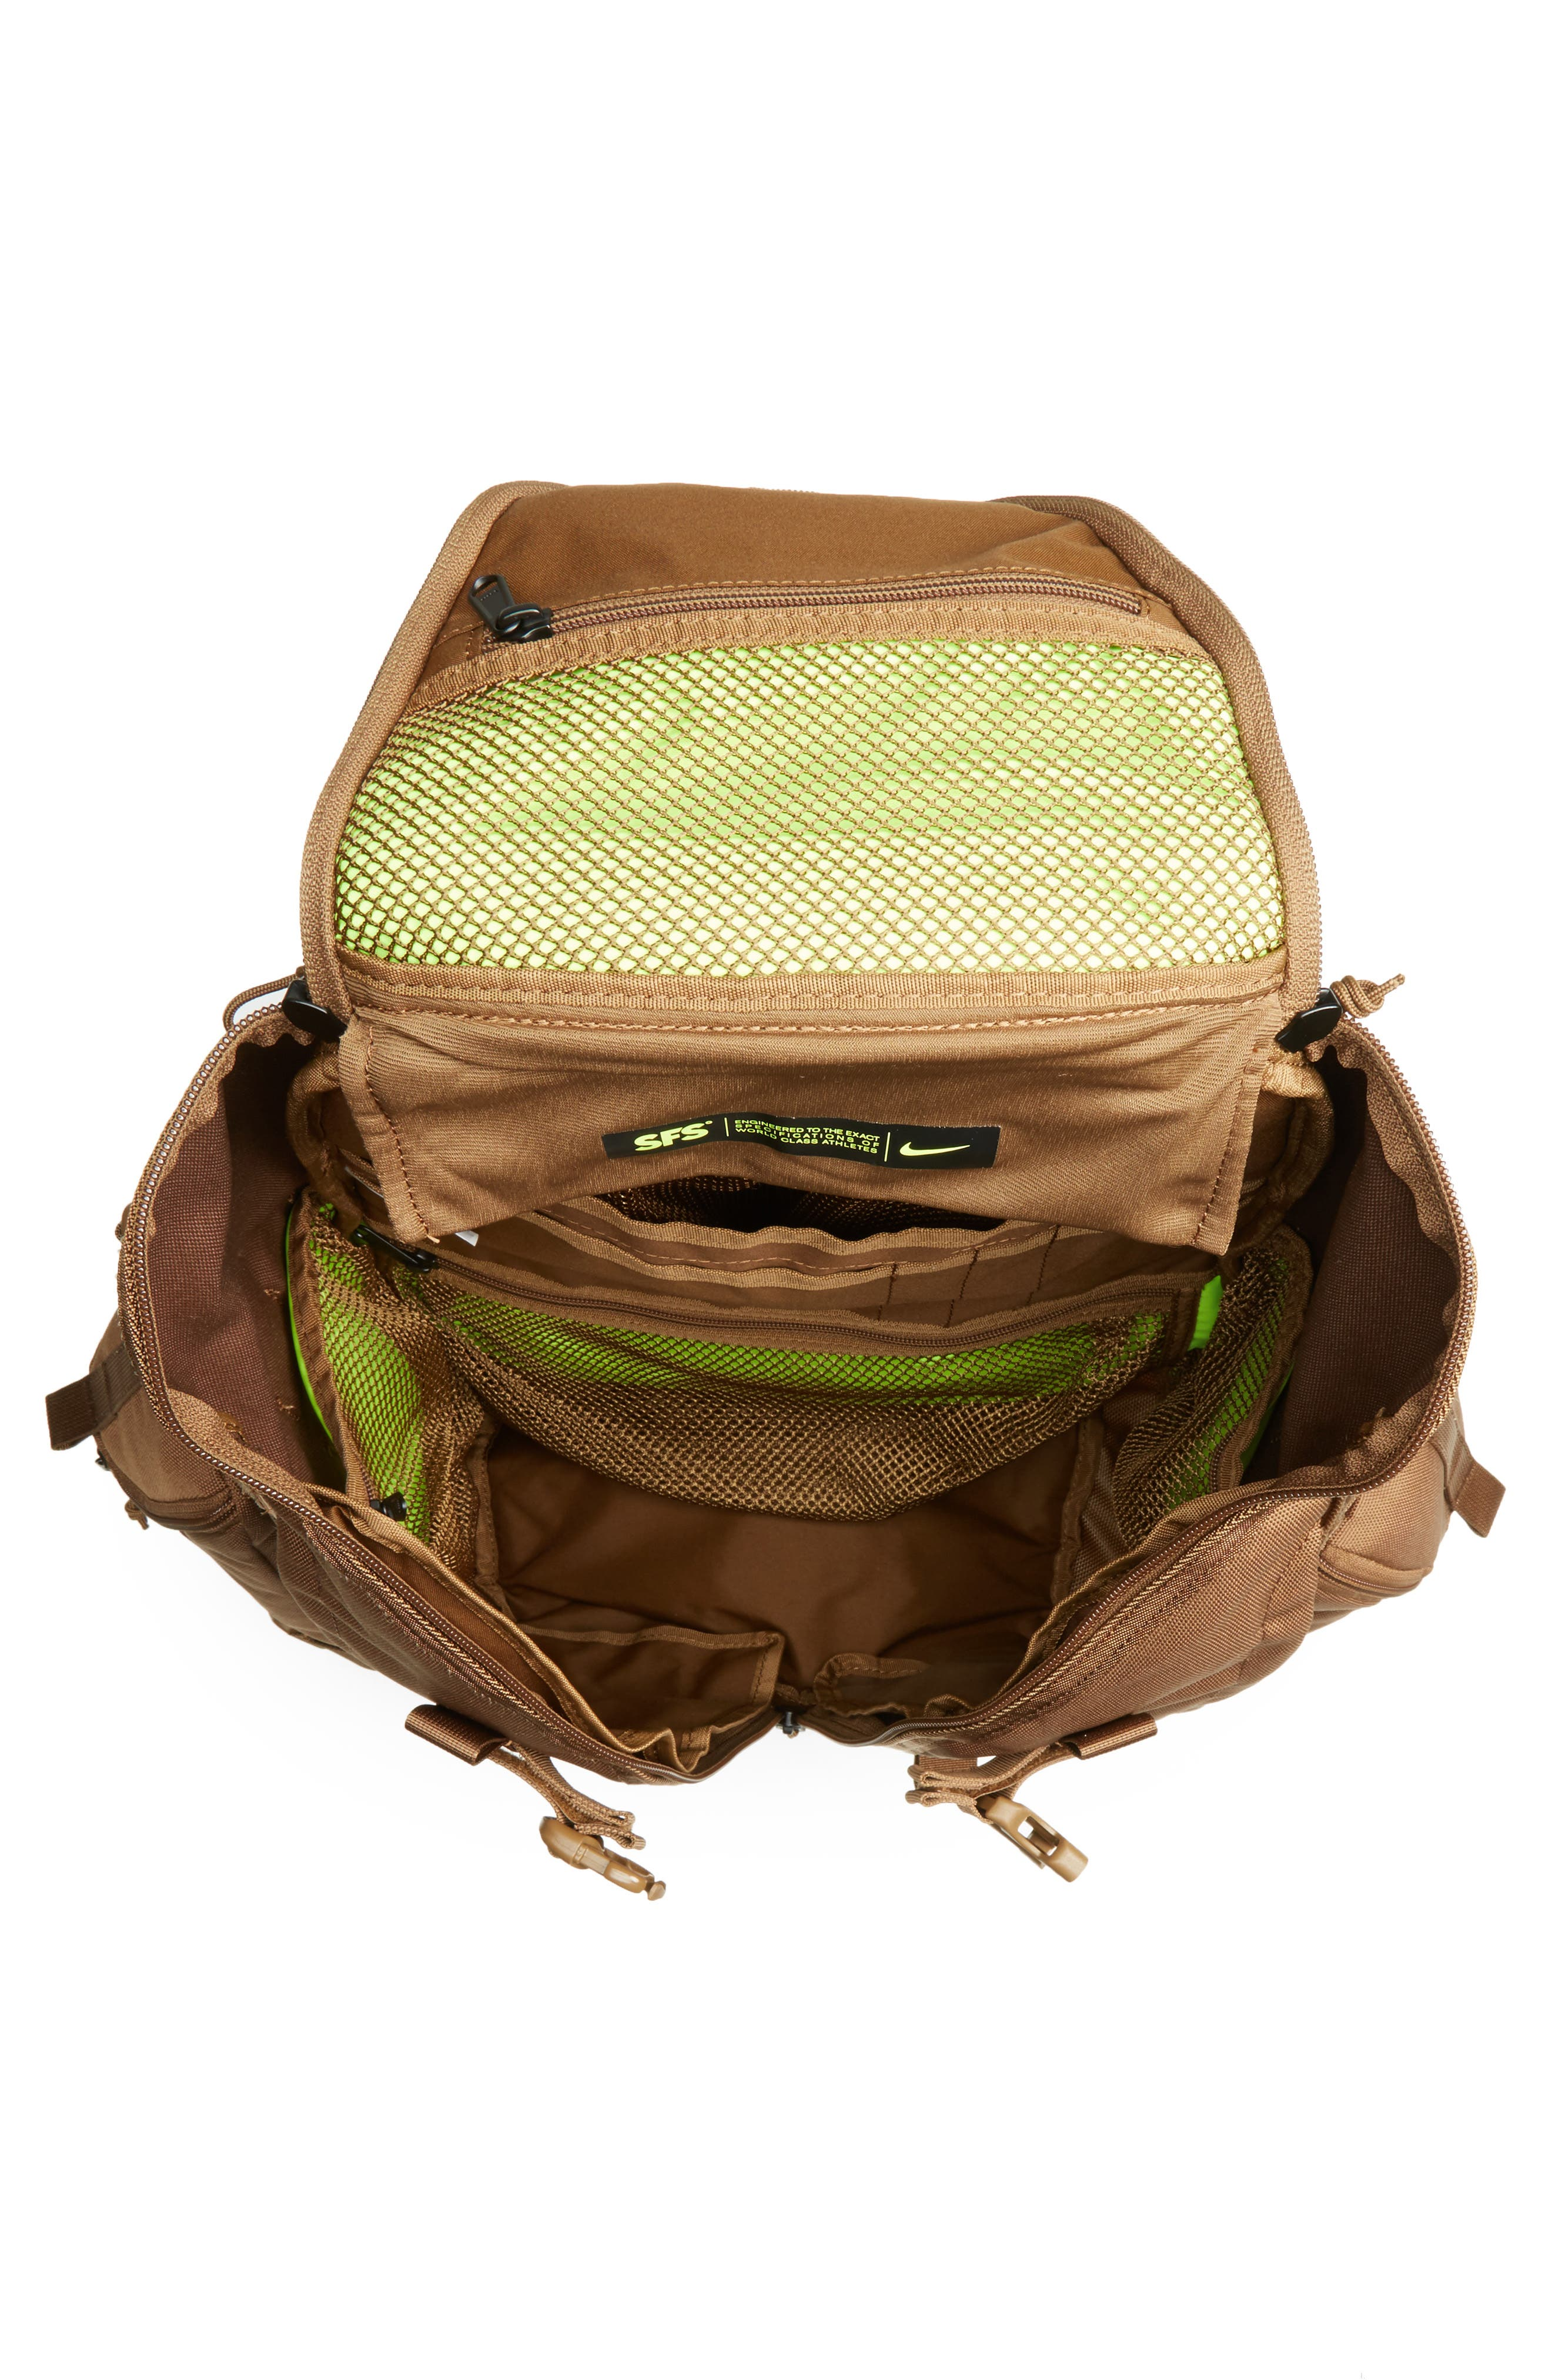 SFS Responder Backpack,                             Alternate thumbnail 5, color,                             Military Brown/ Military Brown